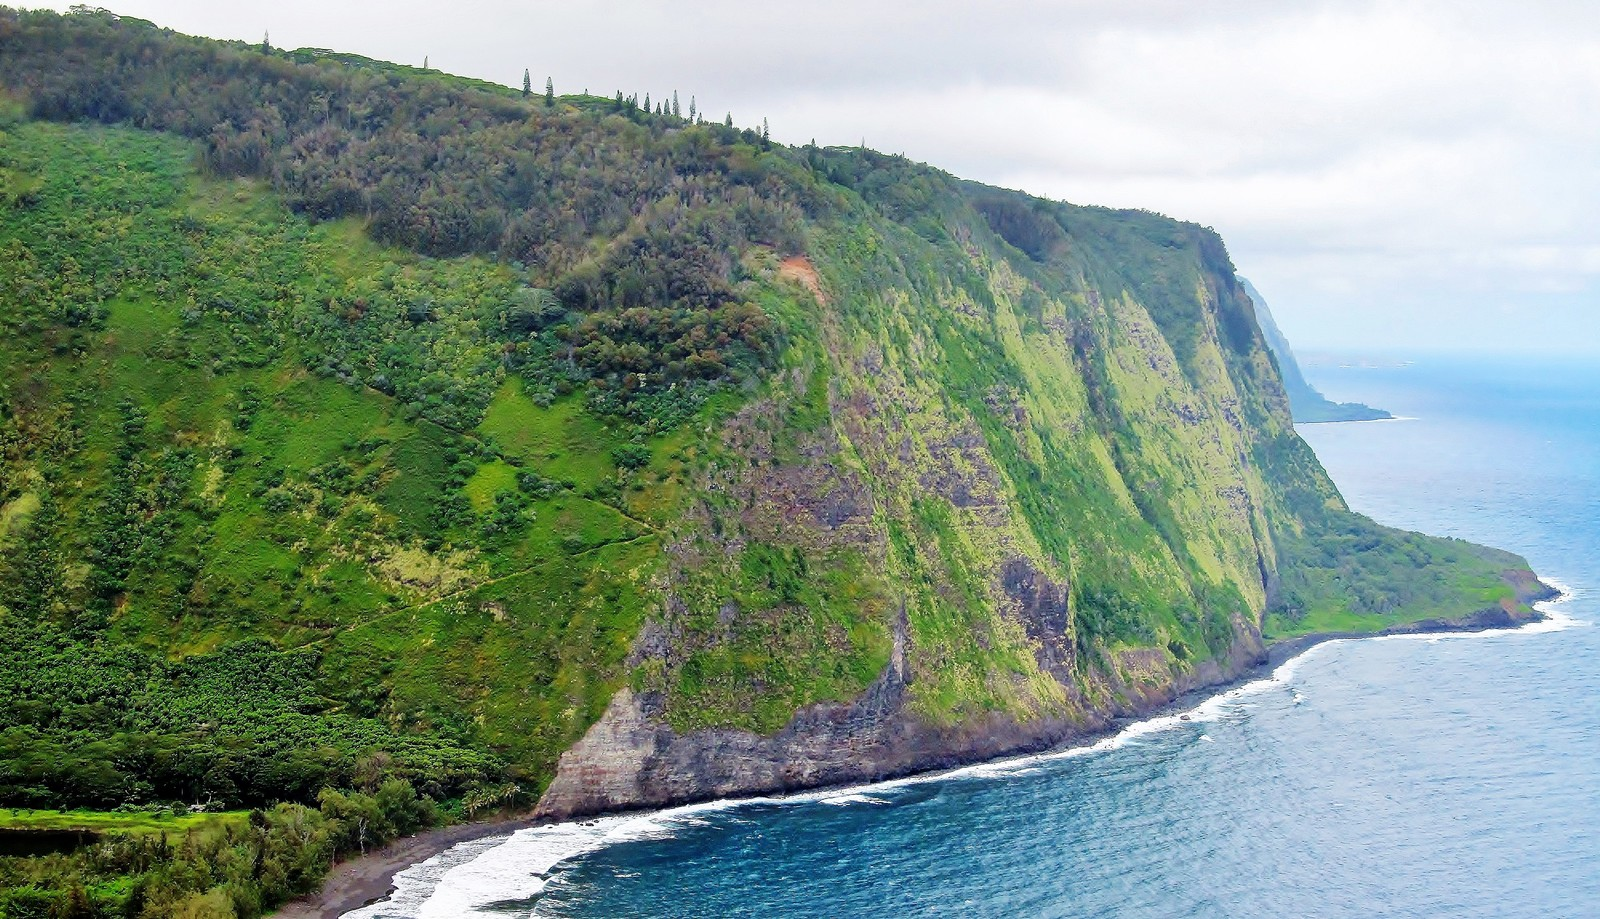 Big Island helicopter tour over Waipi'o Valley